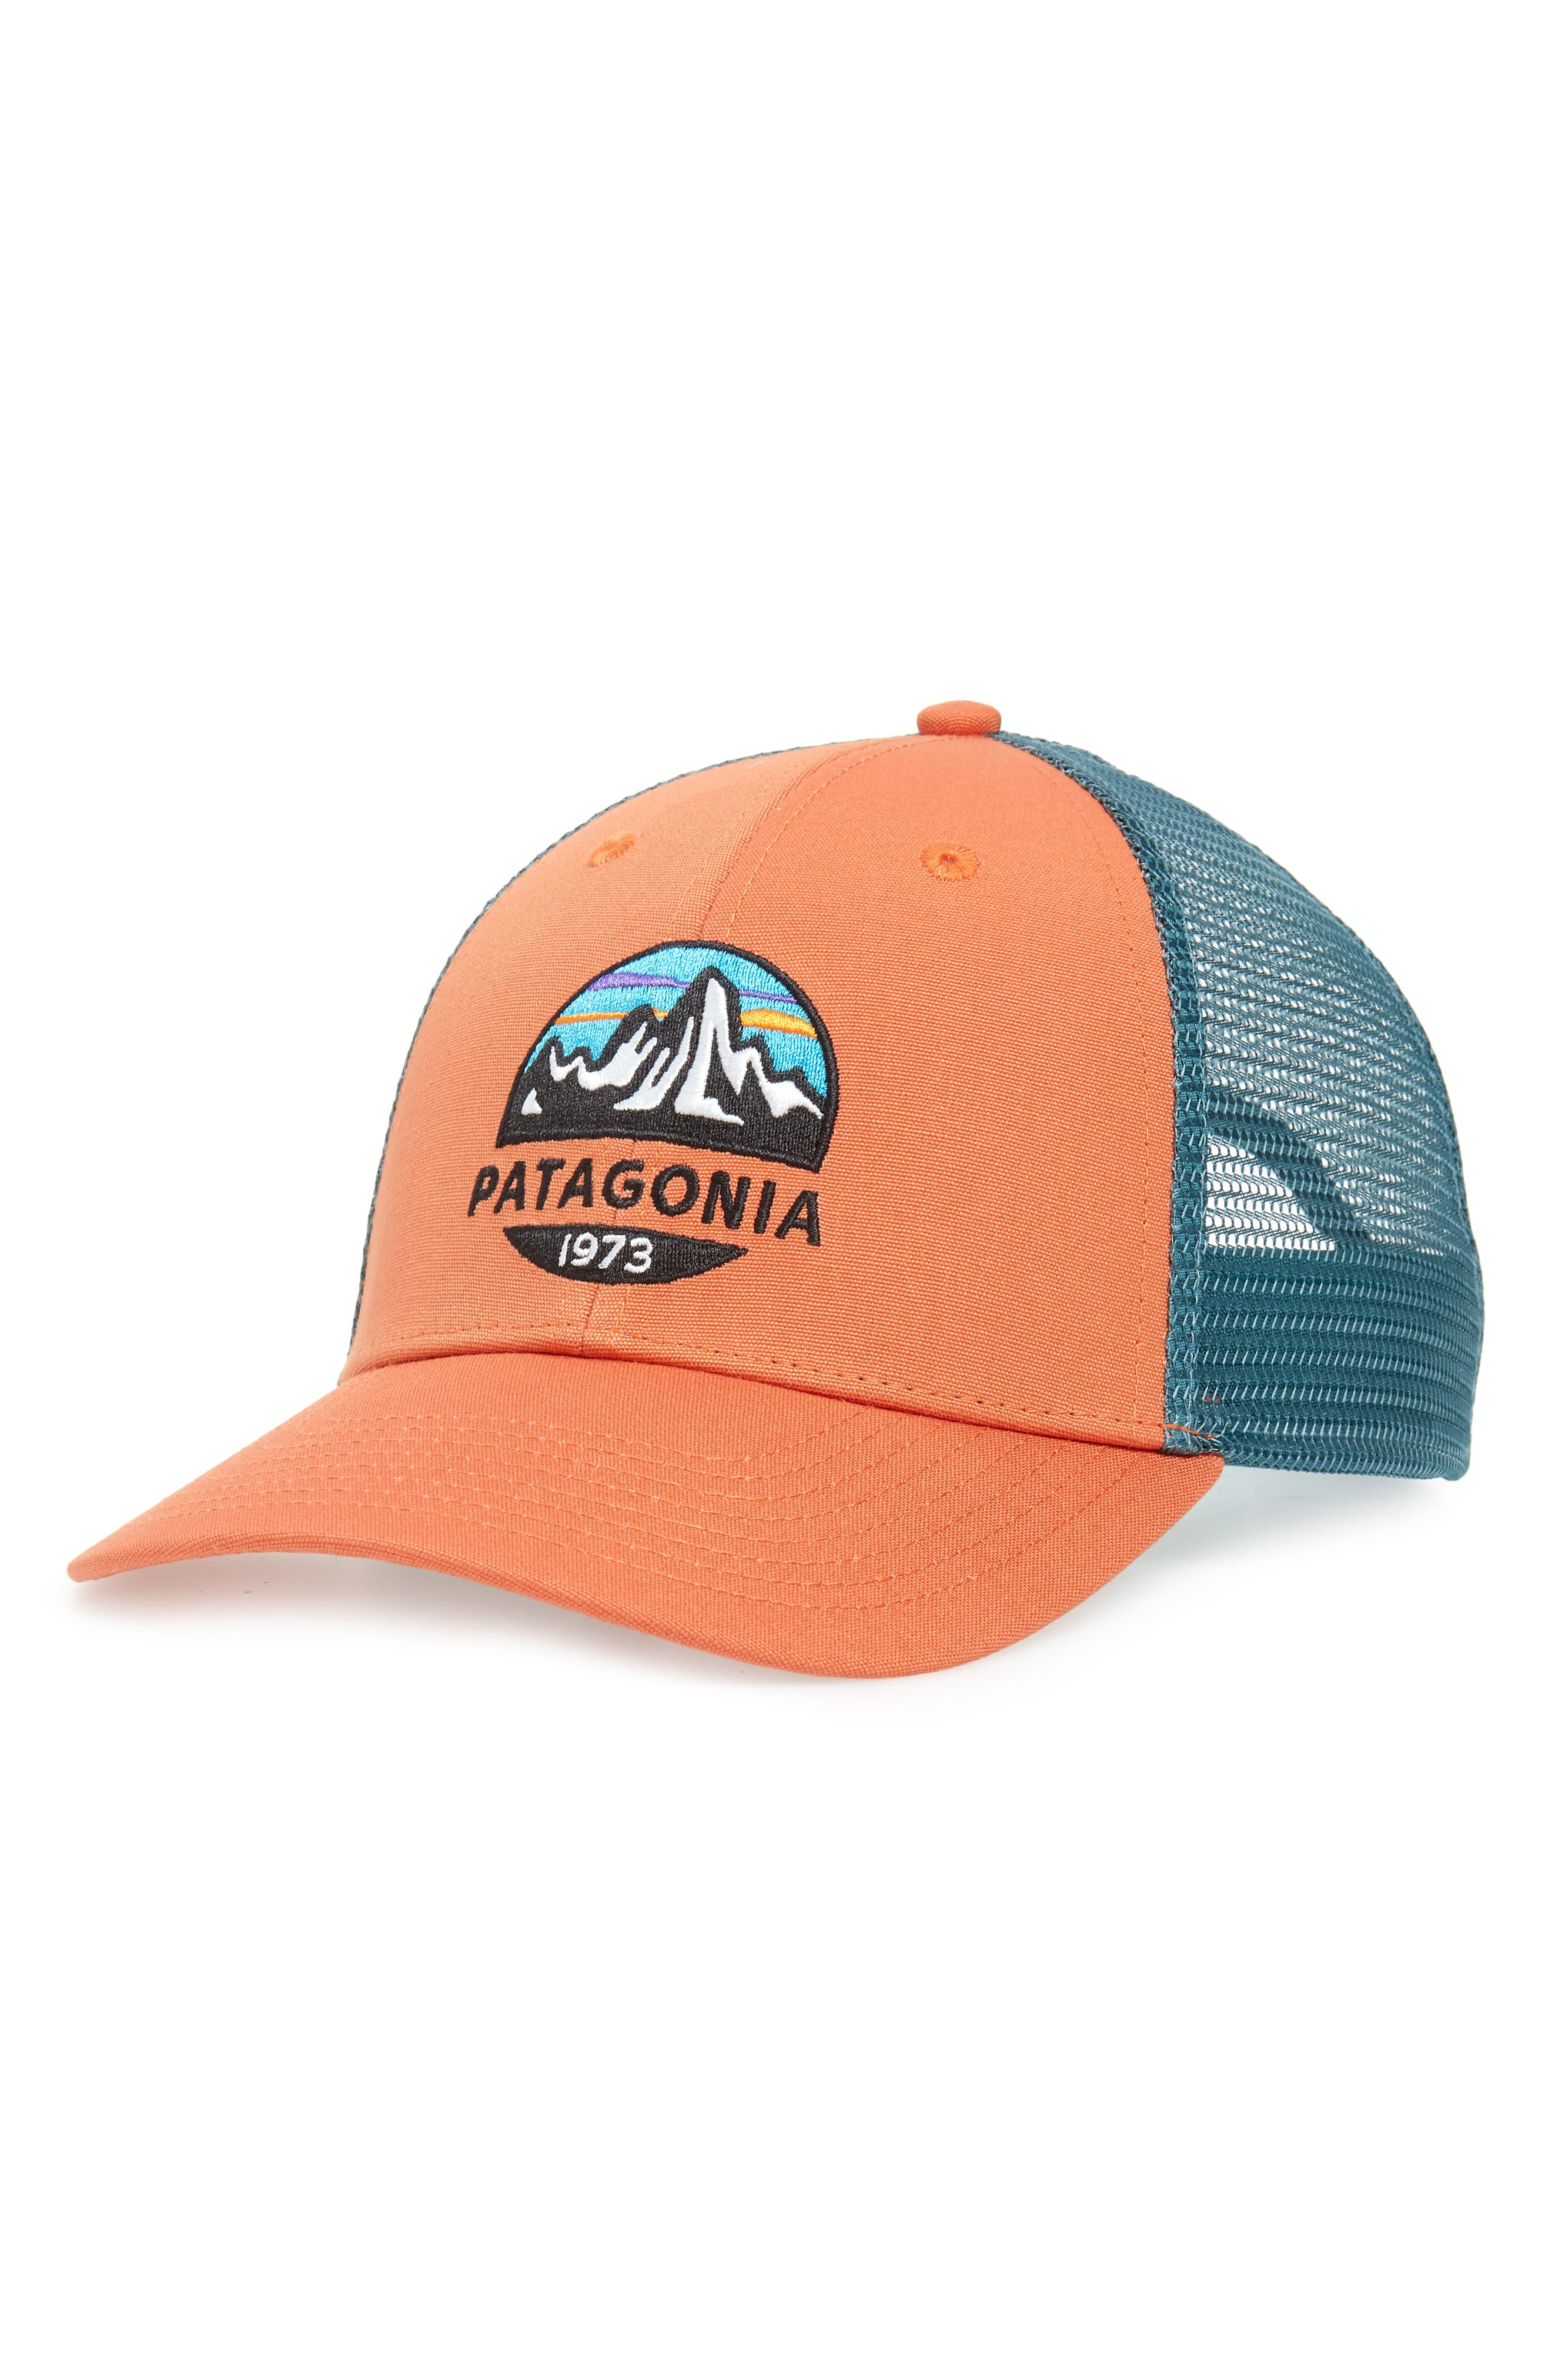 688a18891 Men's Patagonia Fitz Roy Scope Lopro Trucker Cap - Orange in 2019 ...